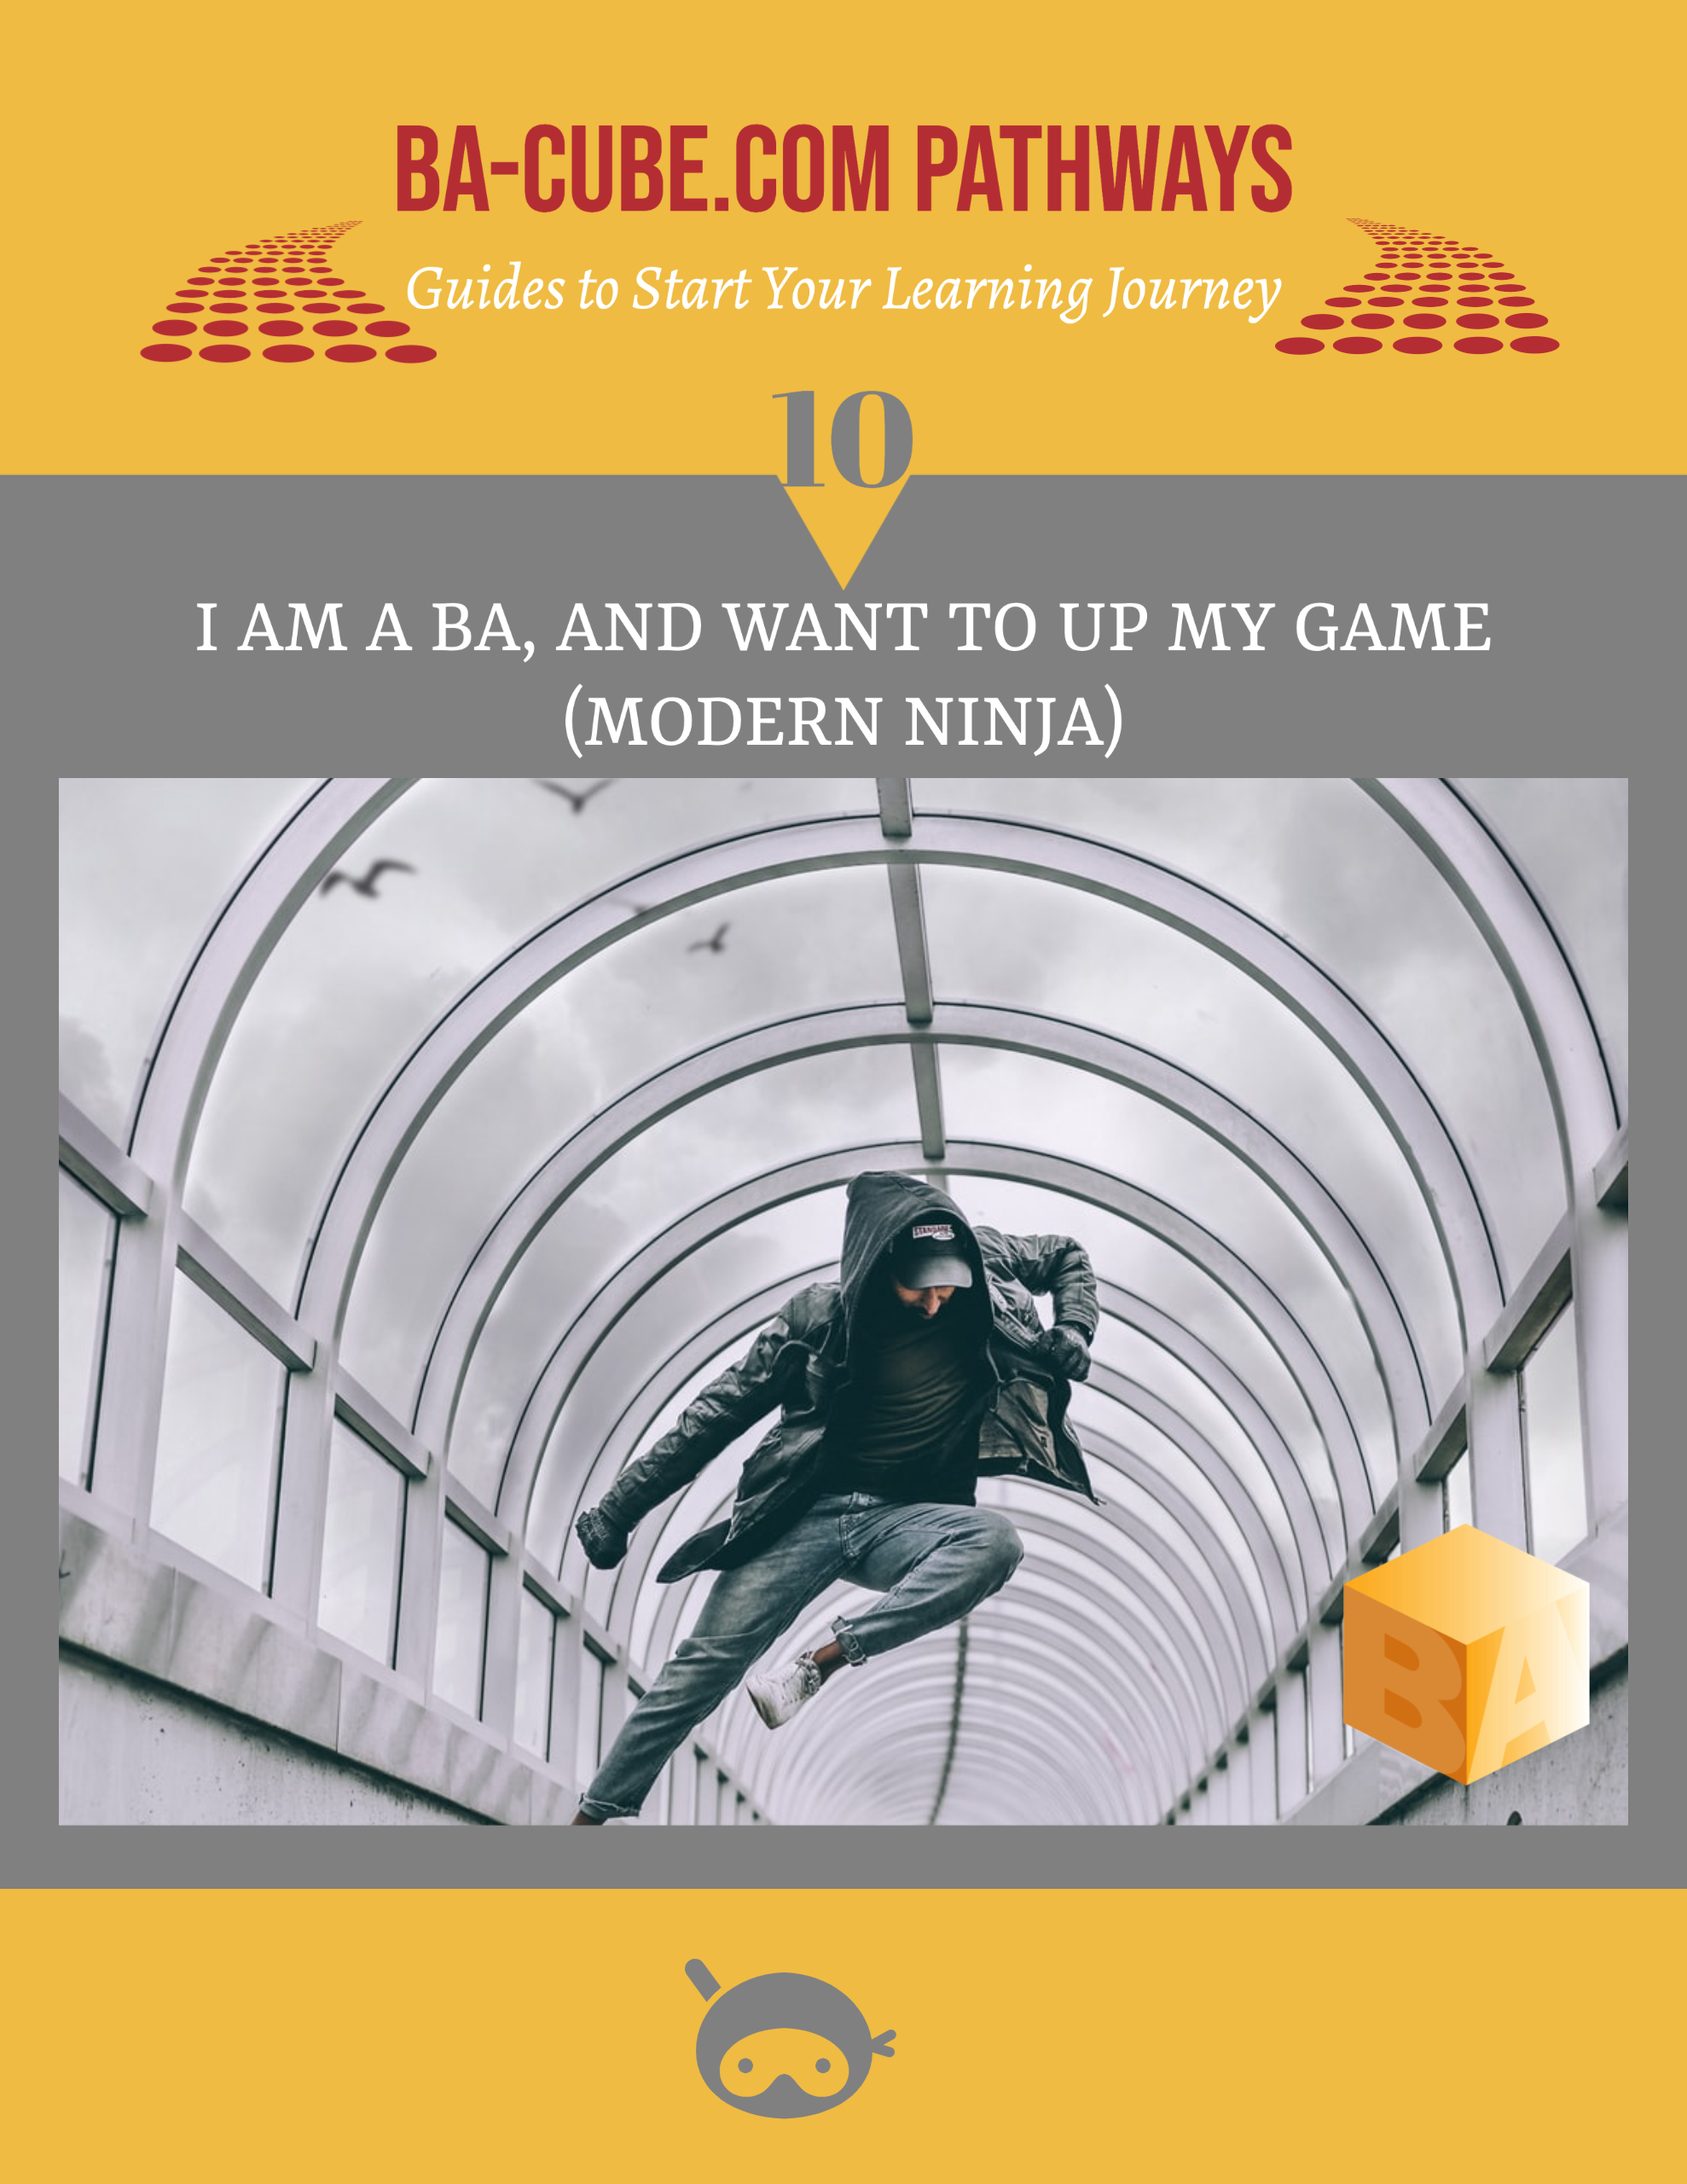 Pathway 10: I want to up my game!